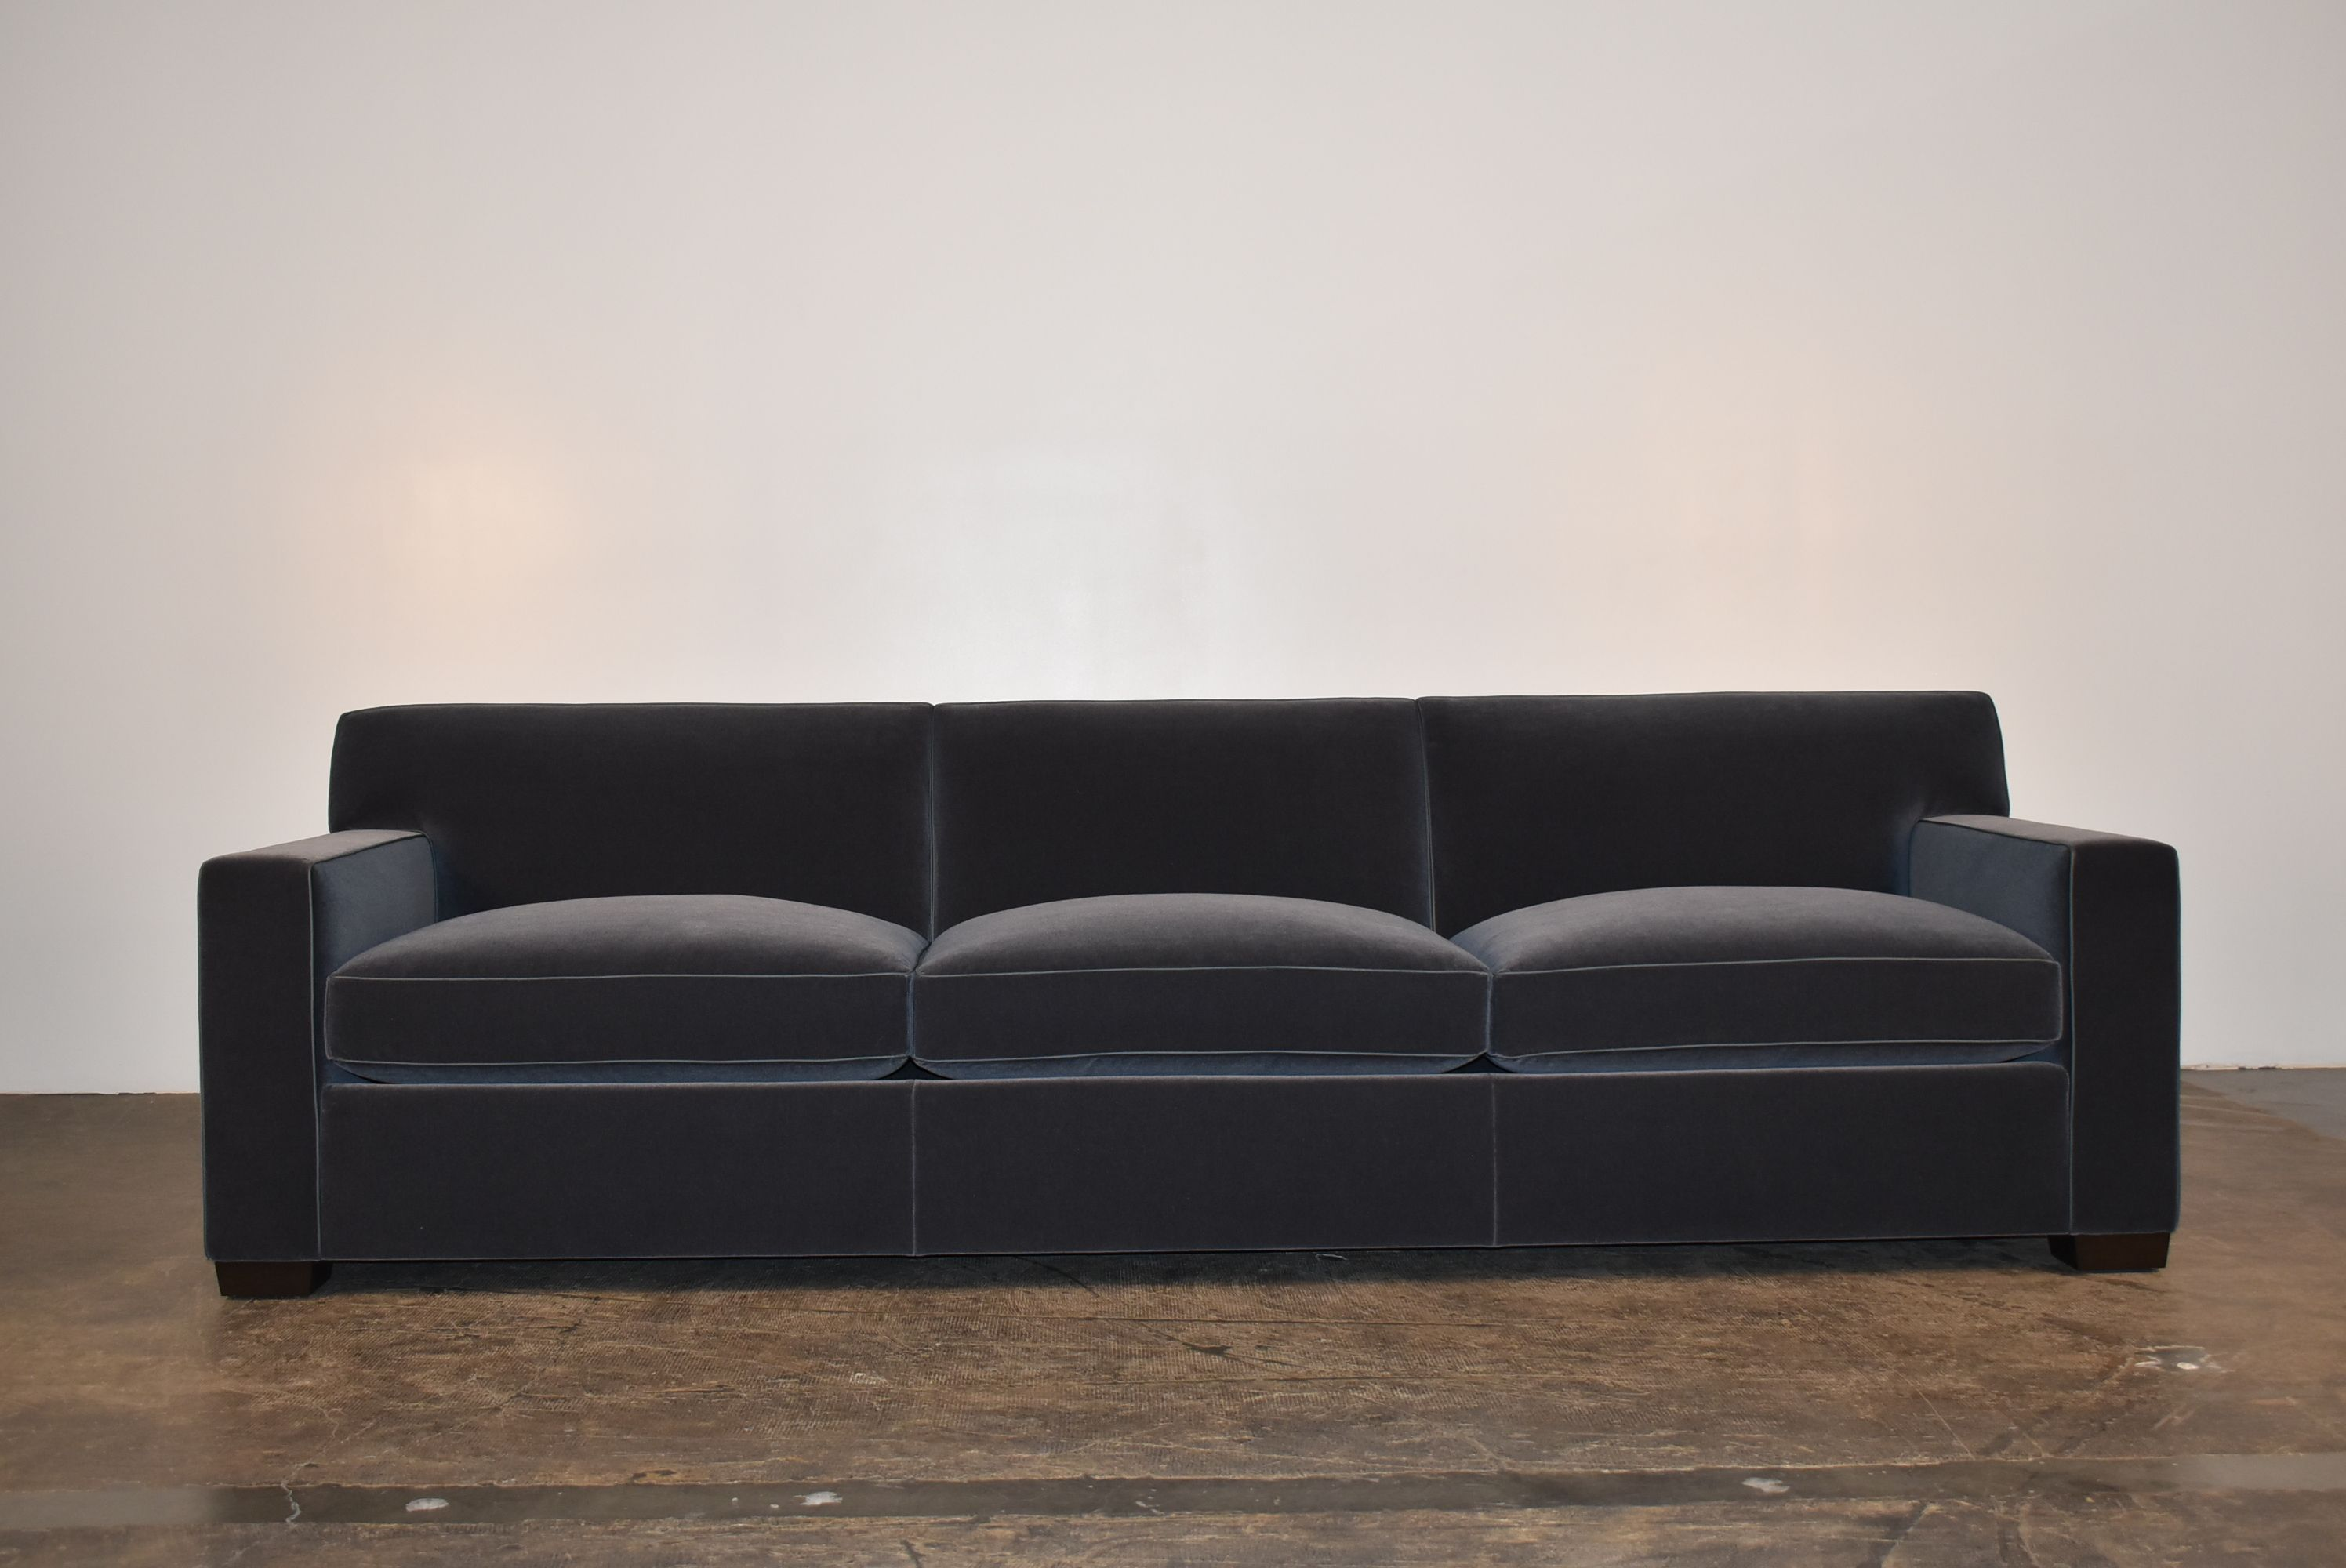 JMF Sofa w/ Leather Welt